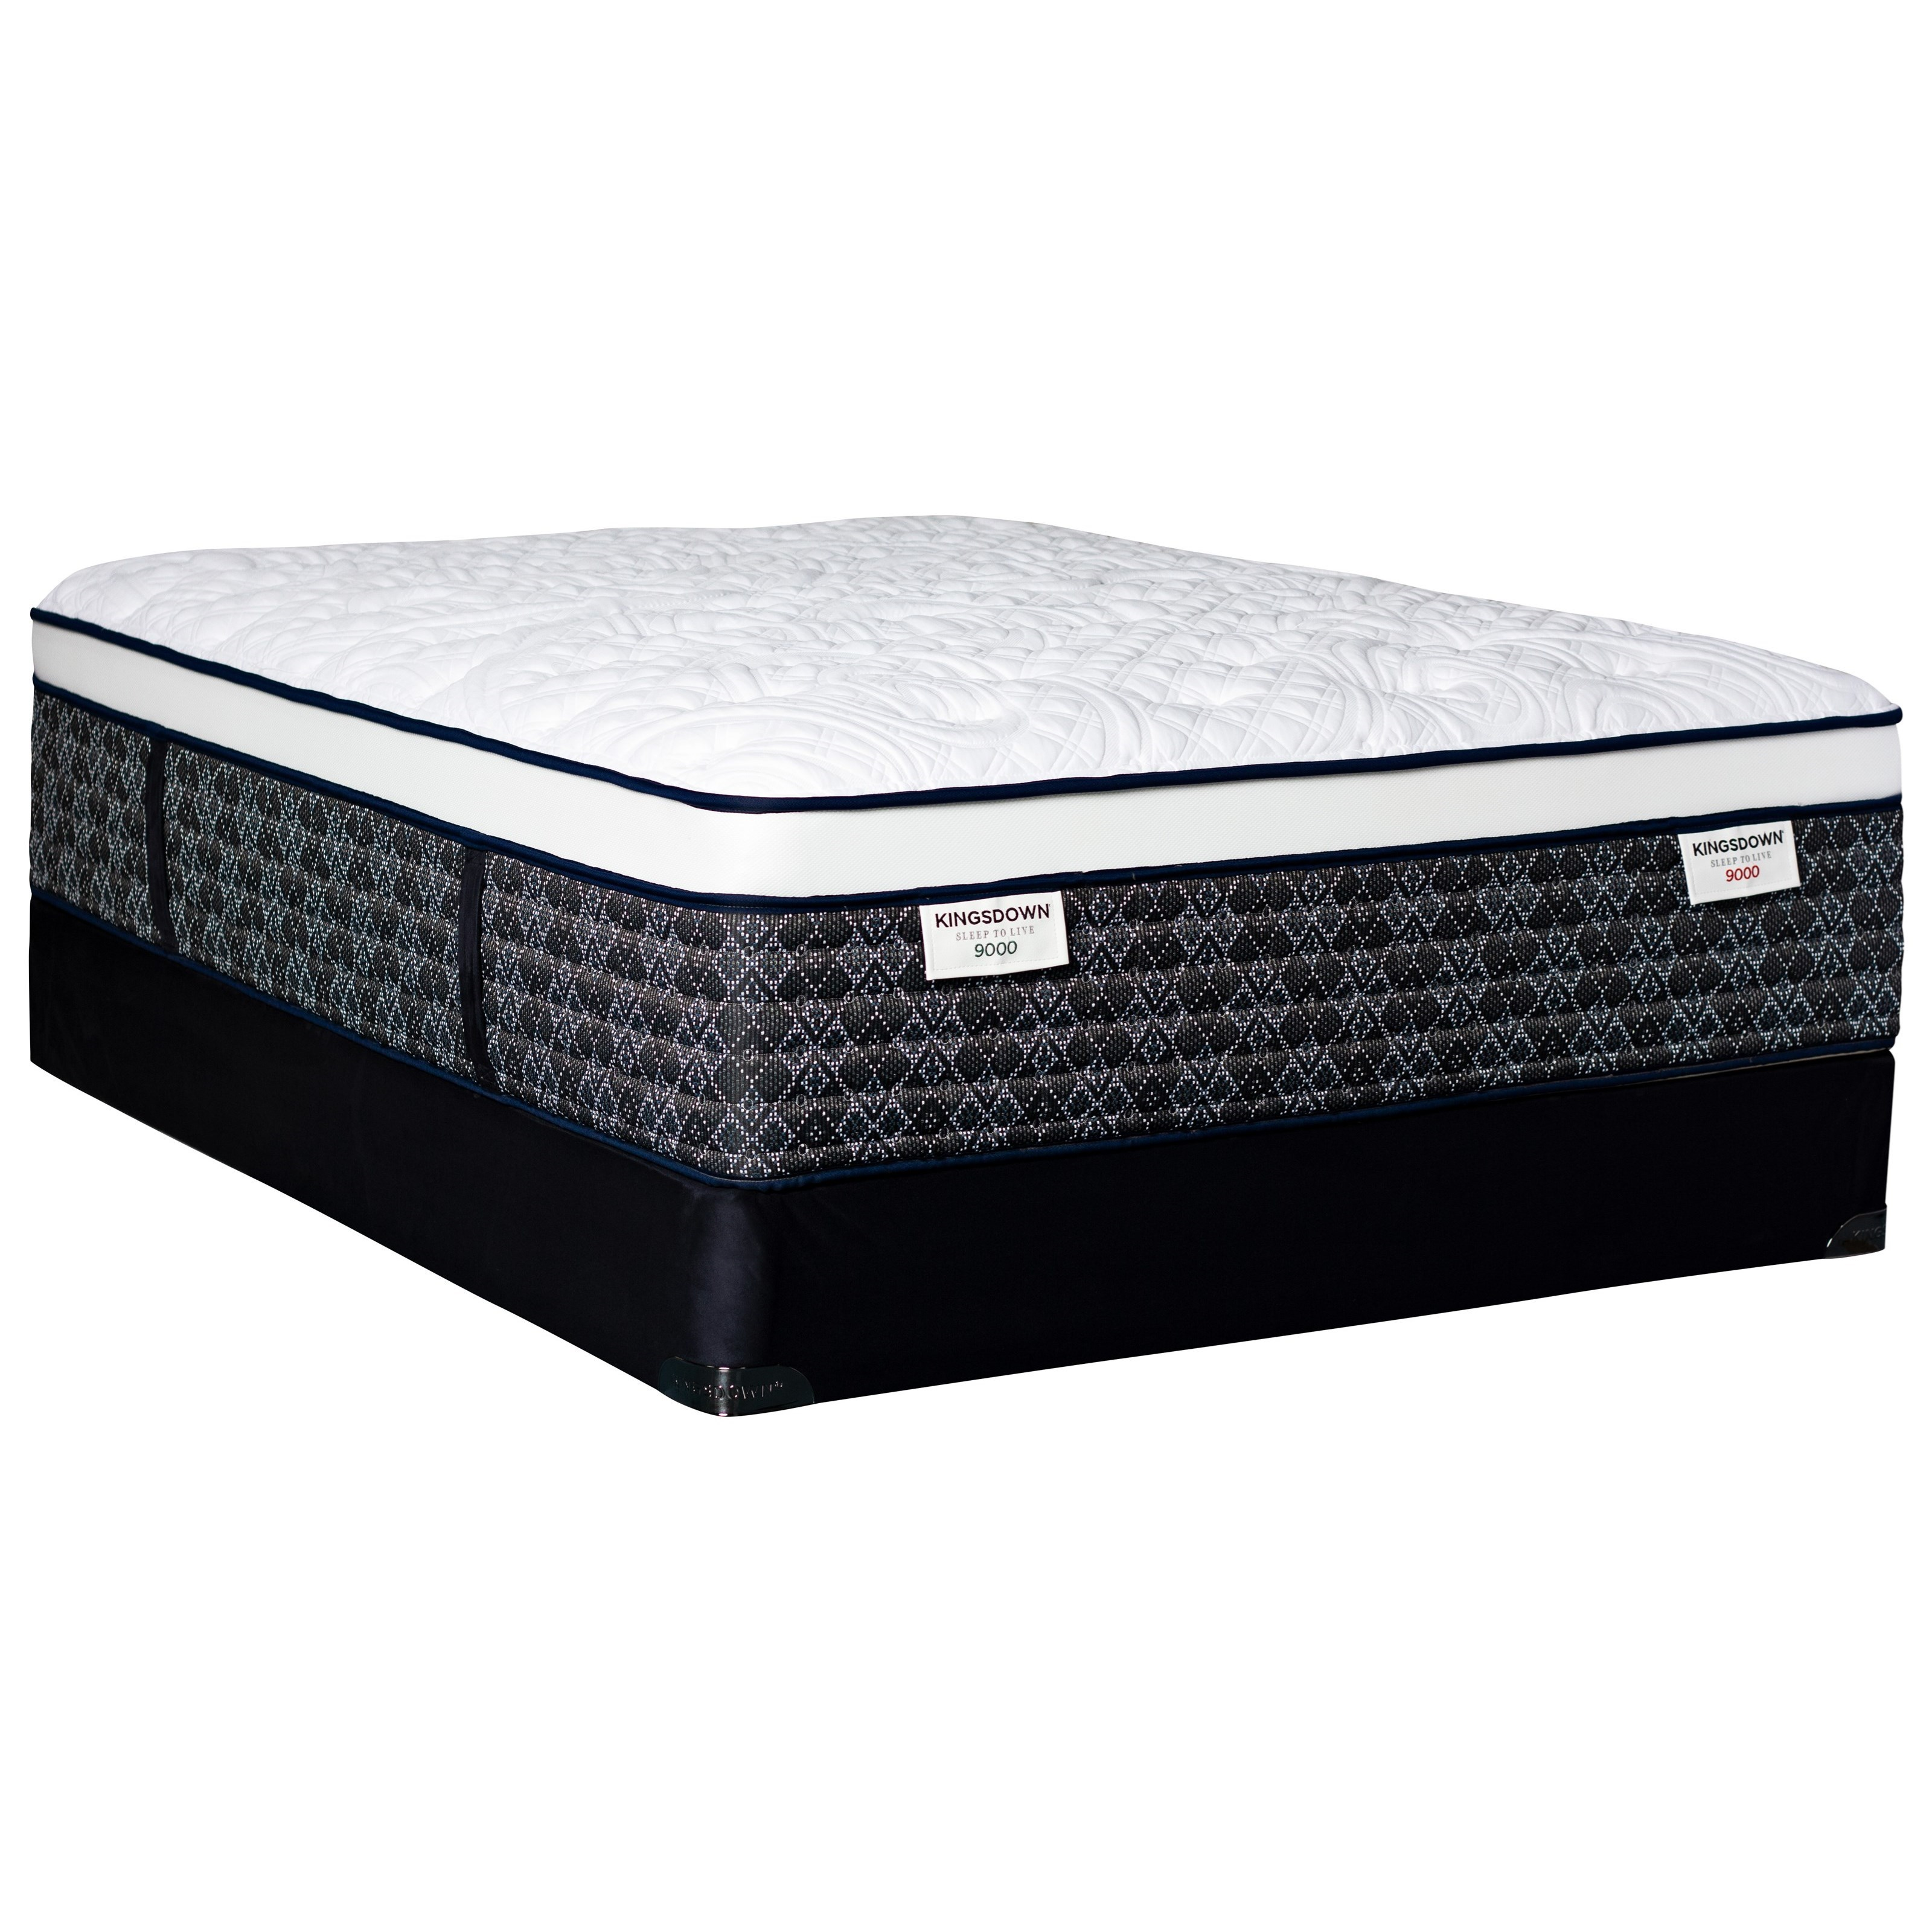 Sleep to Live 9000 Green Red ET King Pocketed Coil Mattress Set by Kingsdown at Story & Lee Furniture